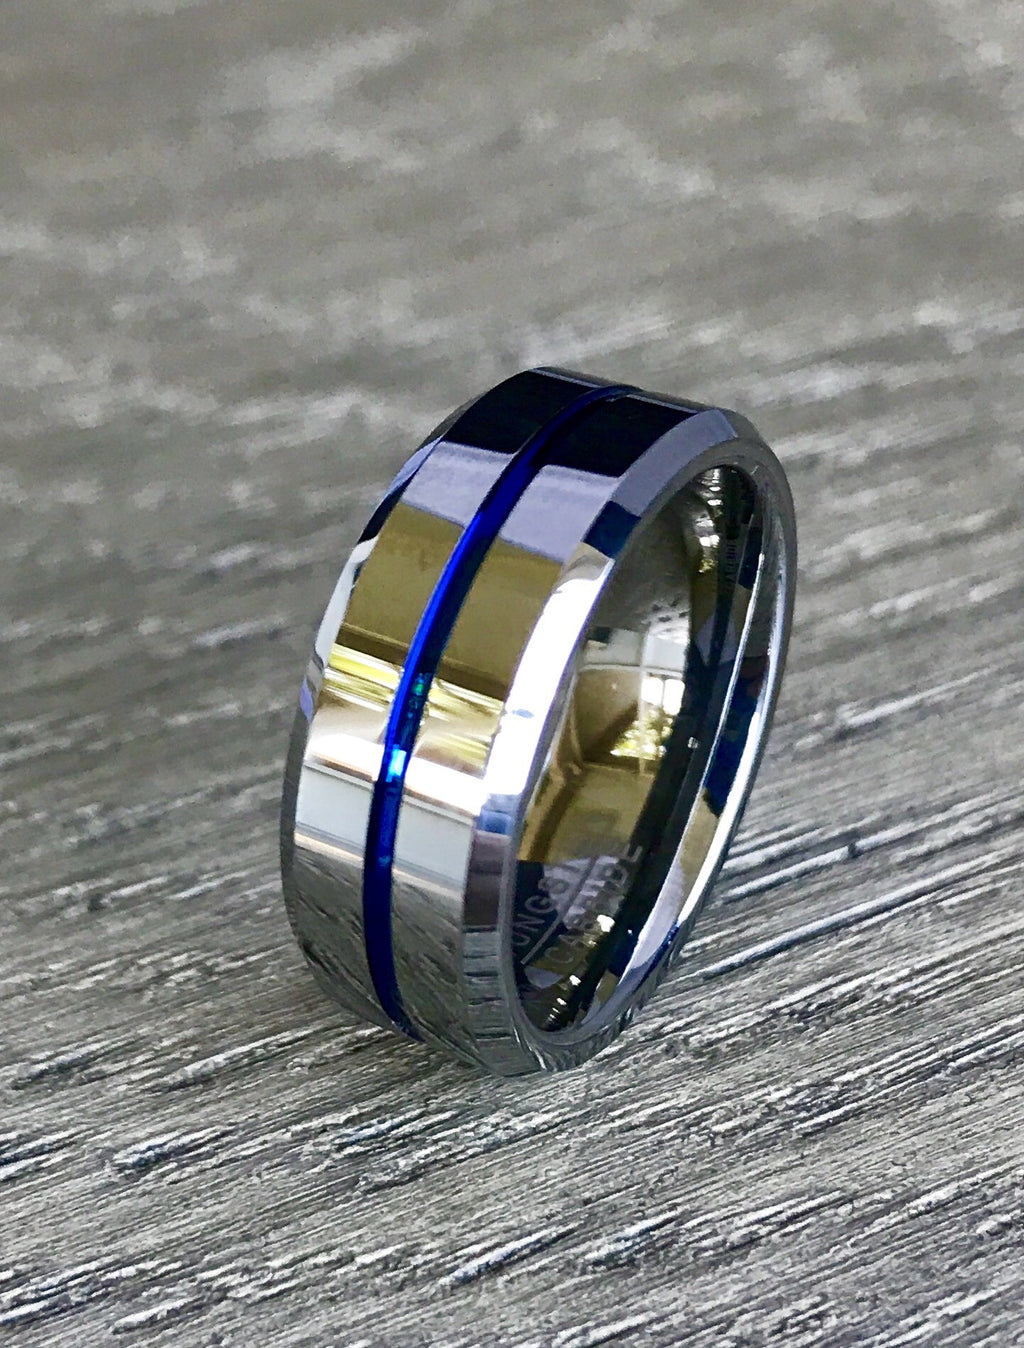 8mm Silver Tungsten Carbide Wedding Band with Blue Line and Beveled Edge- Comfort Fit